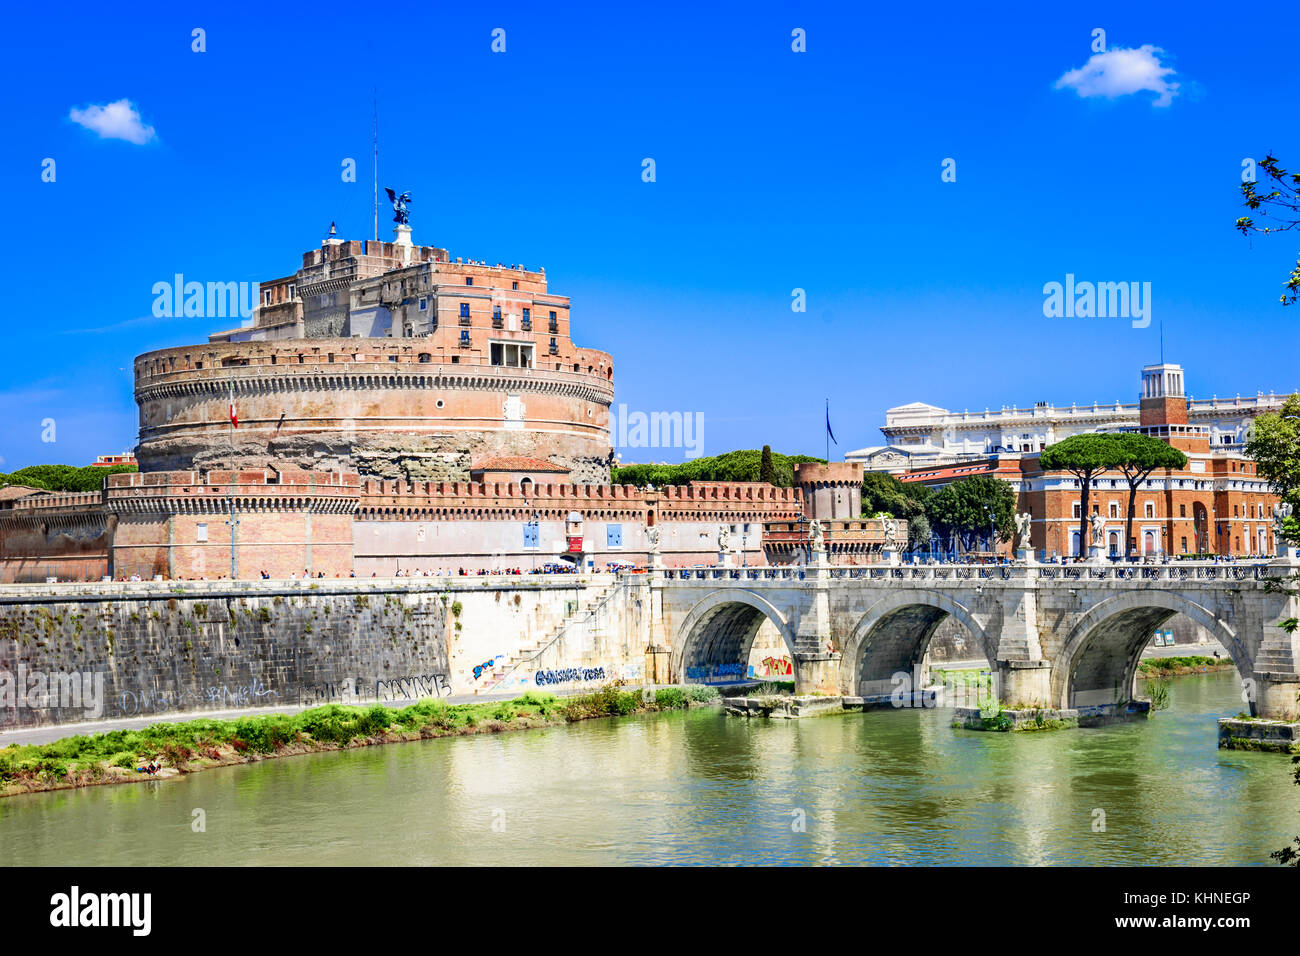 Ponte Sant'Angelo bridge crossing the river Tiber,Rome,Italy,Europe - Stock Image